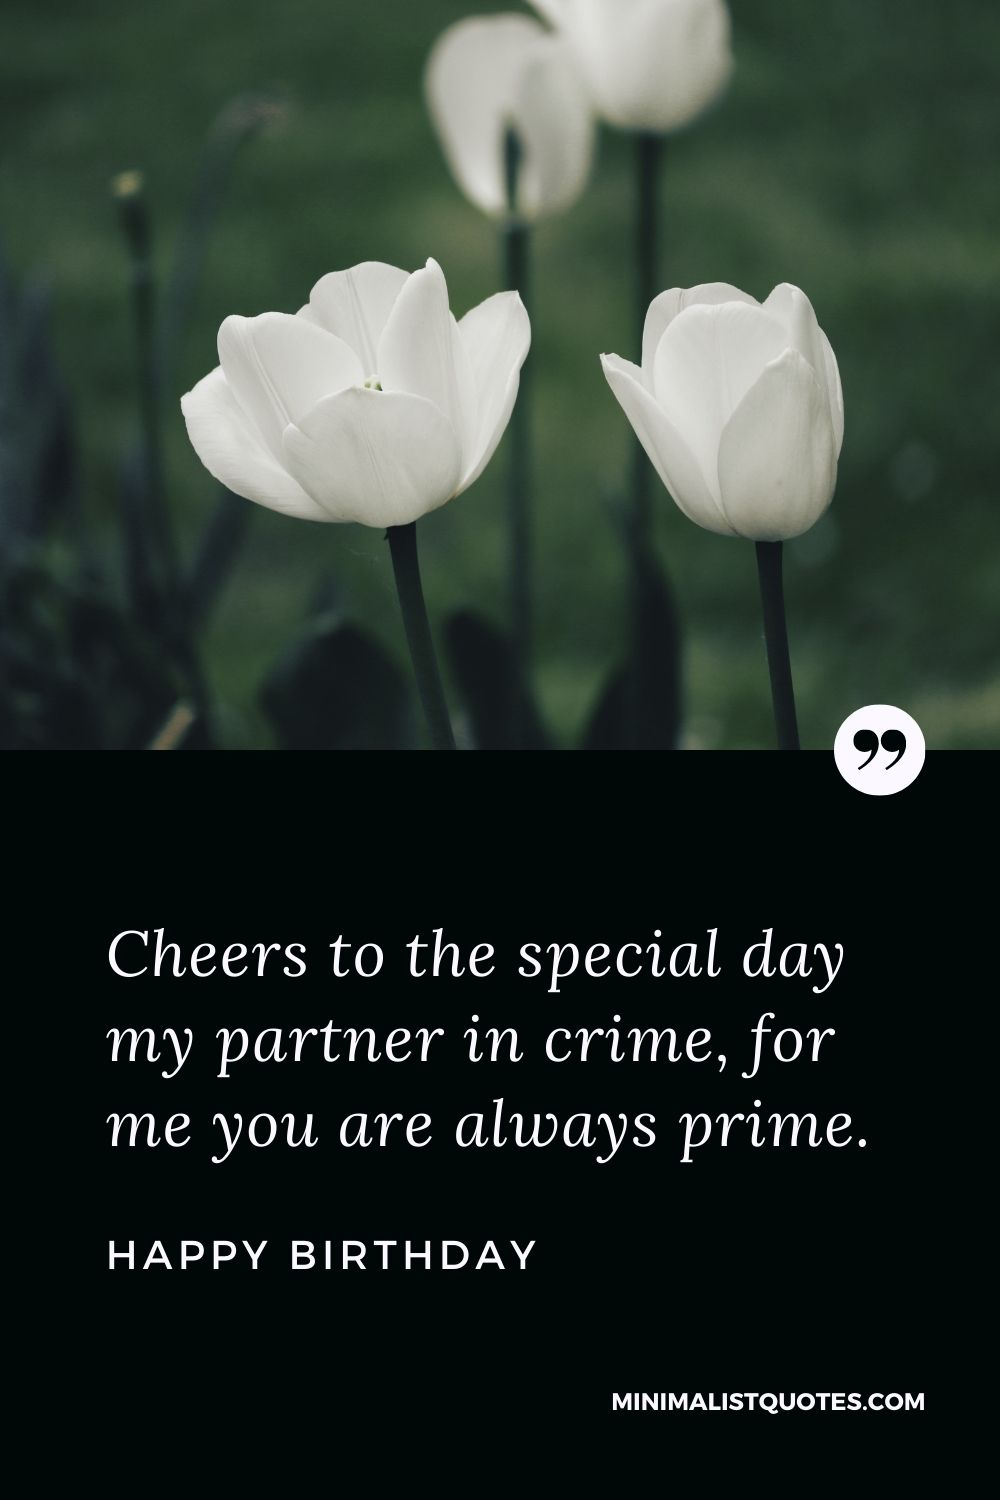 Happy Birthday Wishes - Cheers to the special day my partner in crime, for me you are always prime.